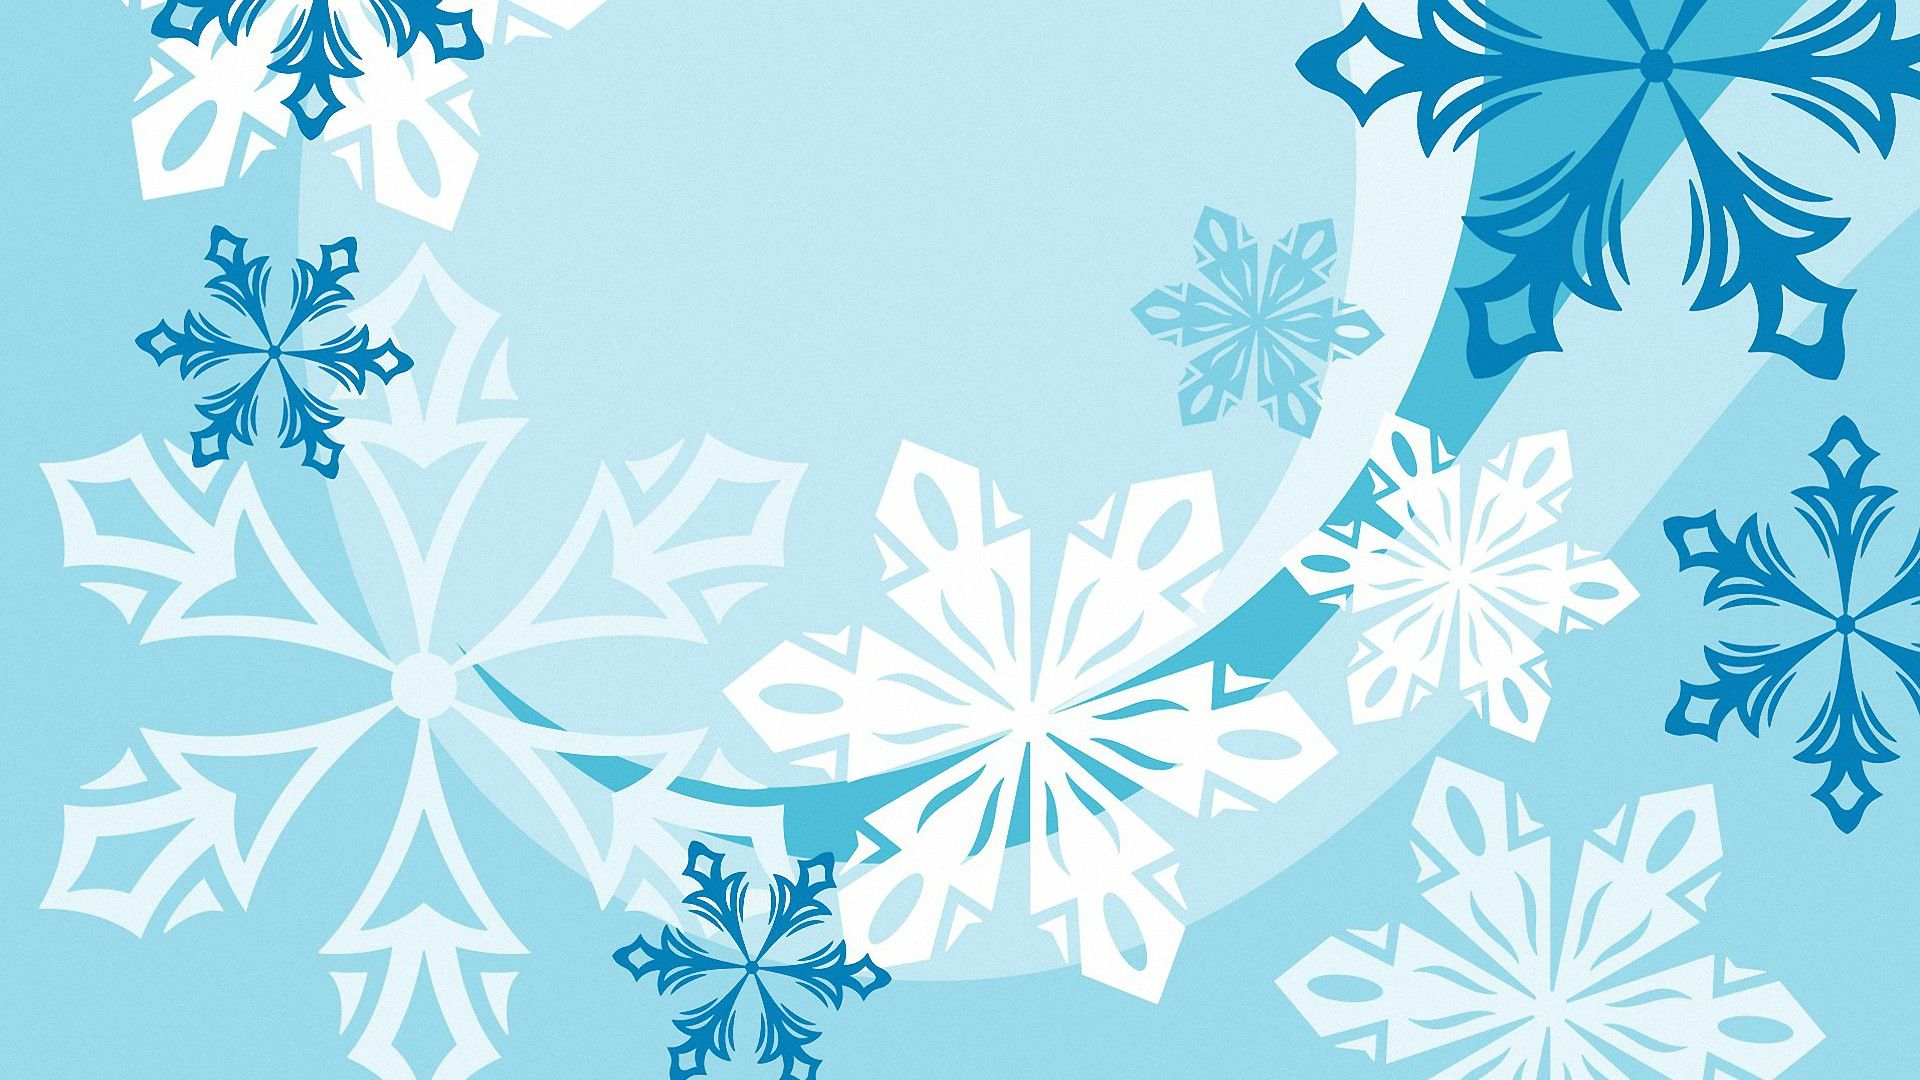 New Year With Snowflakes Desktop Wallpaper